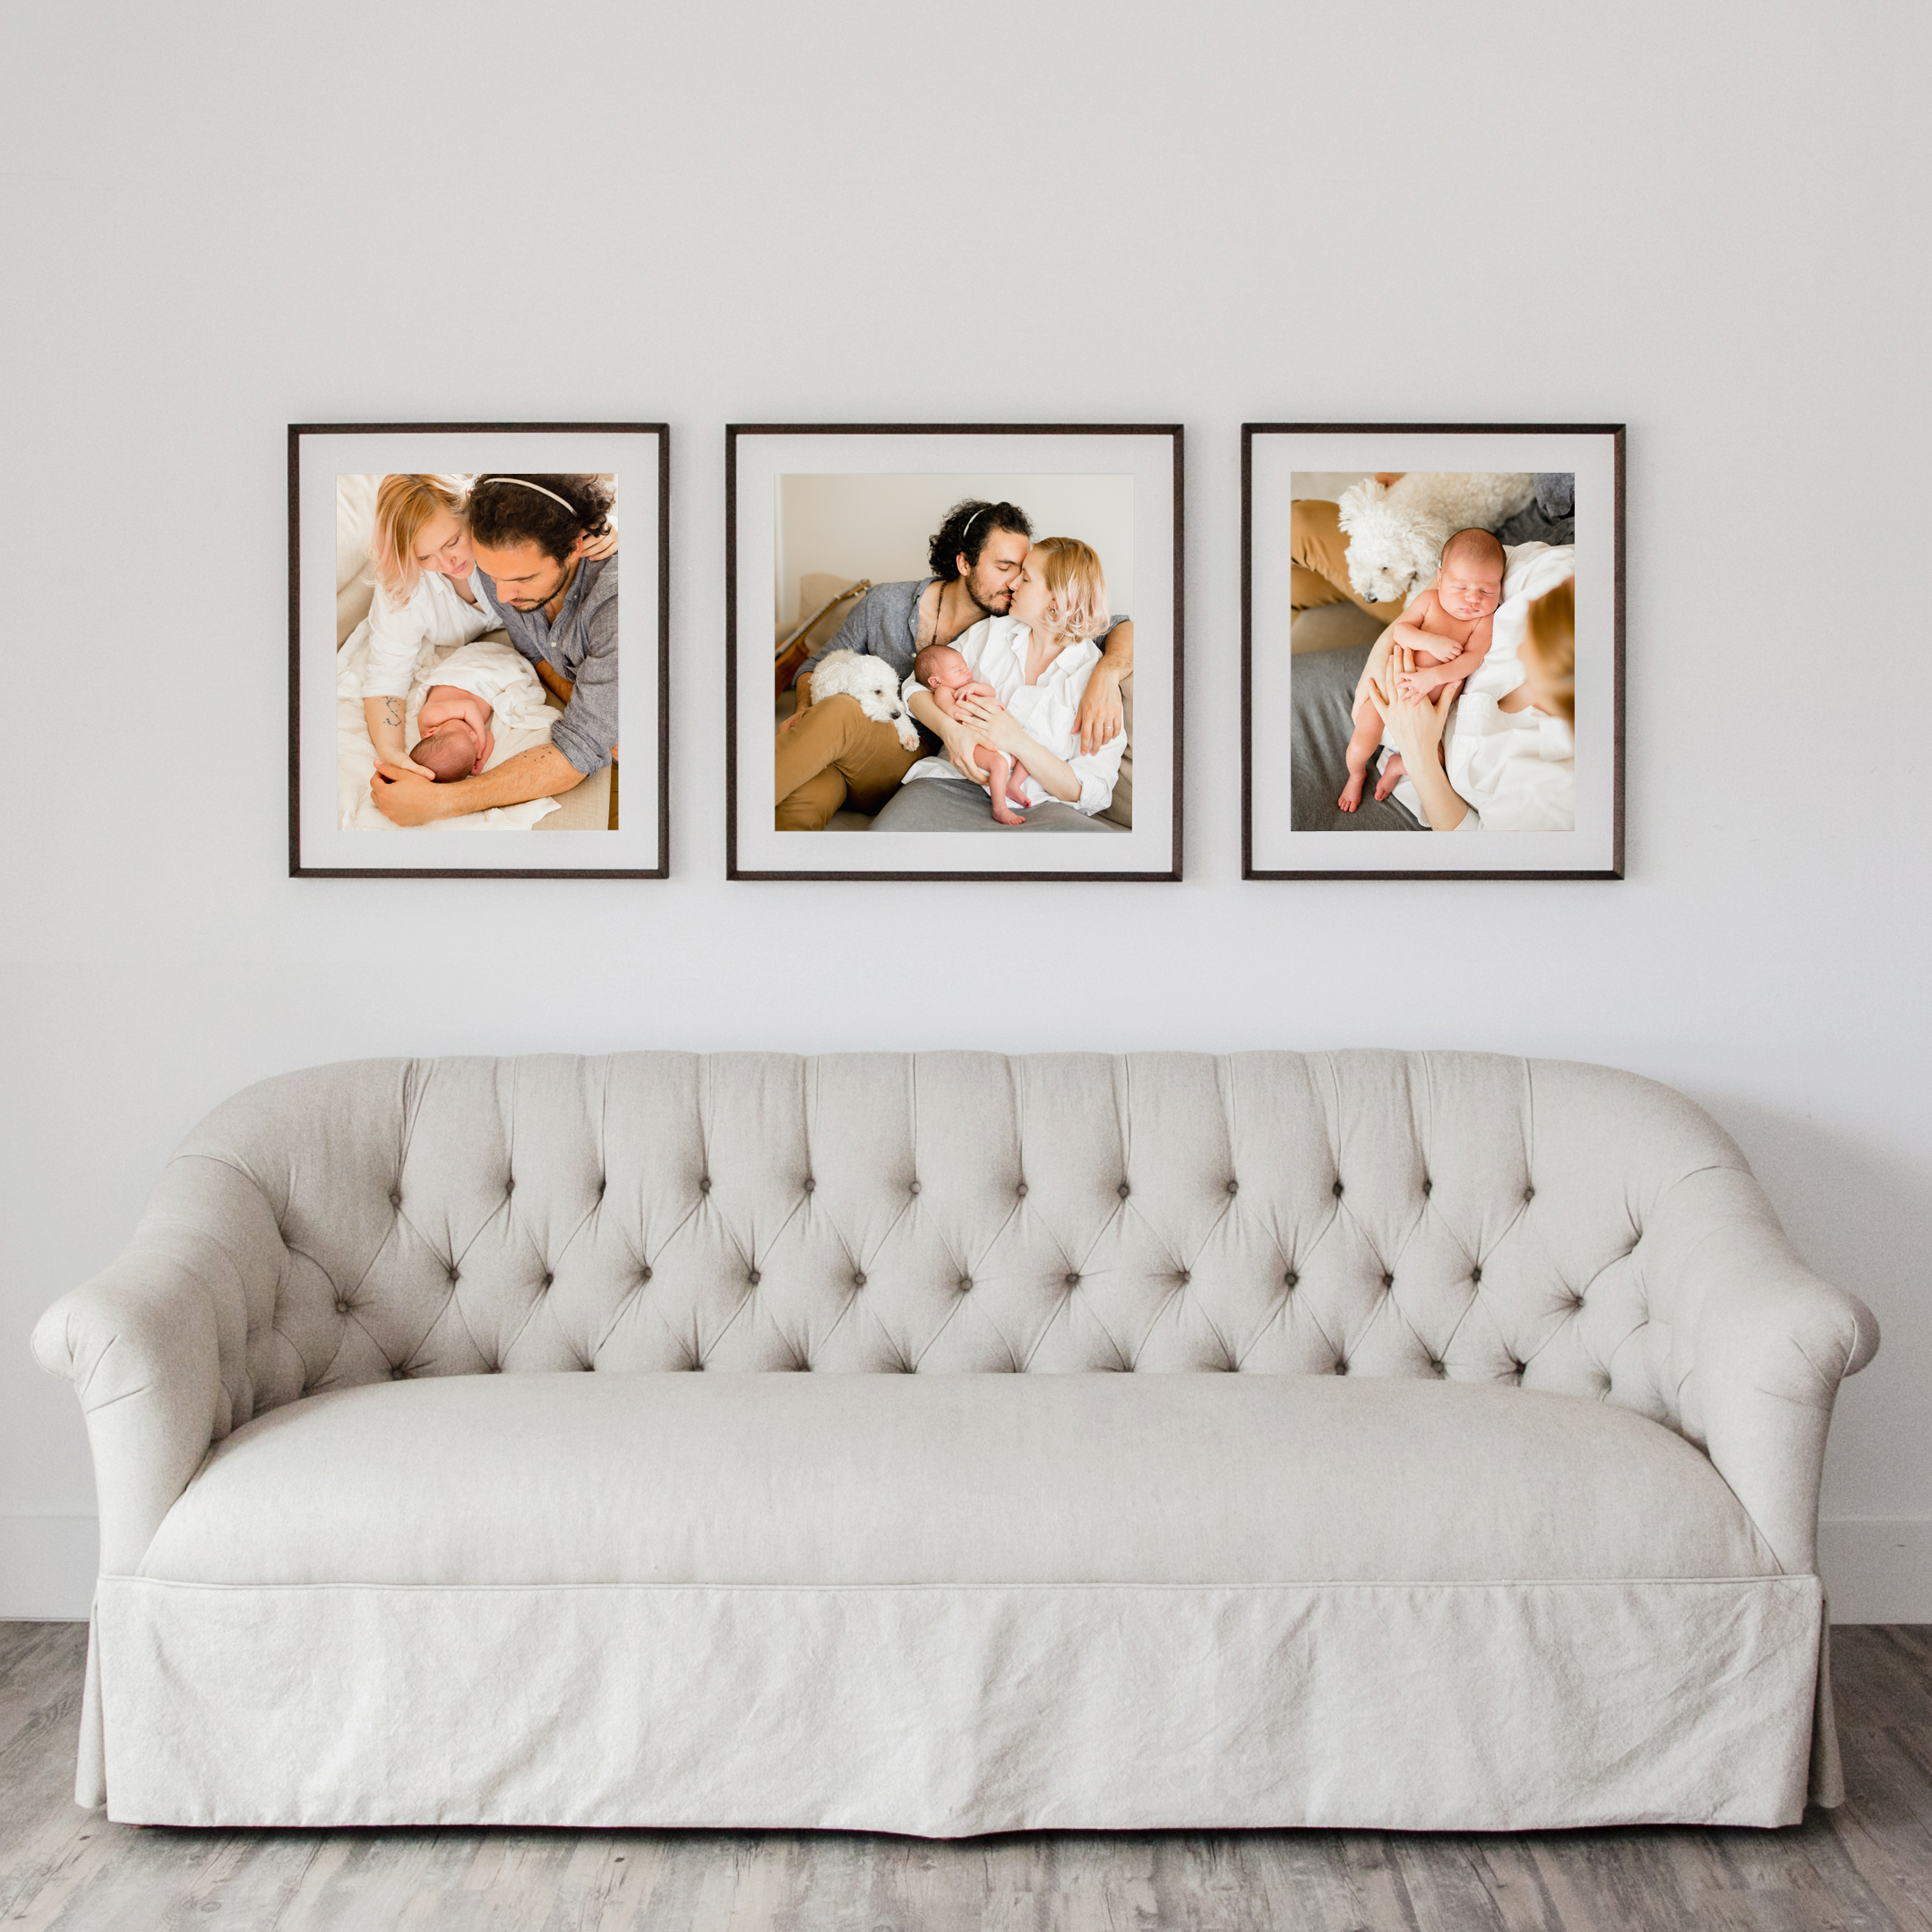 Our Artisan Collection: - 2, 20x24in portraits + 1, 24x24in portraitFramed or in Gallery Canvas2250e (Total value 3750e)***Includes surprise 1500e BONUS if ordered during your viewing)***